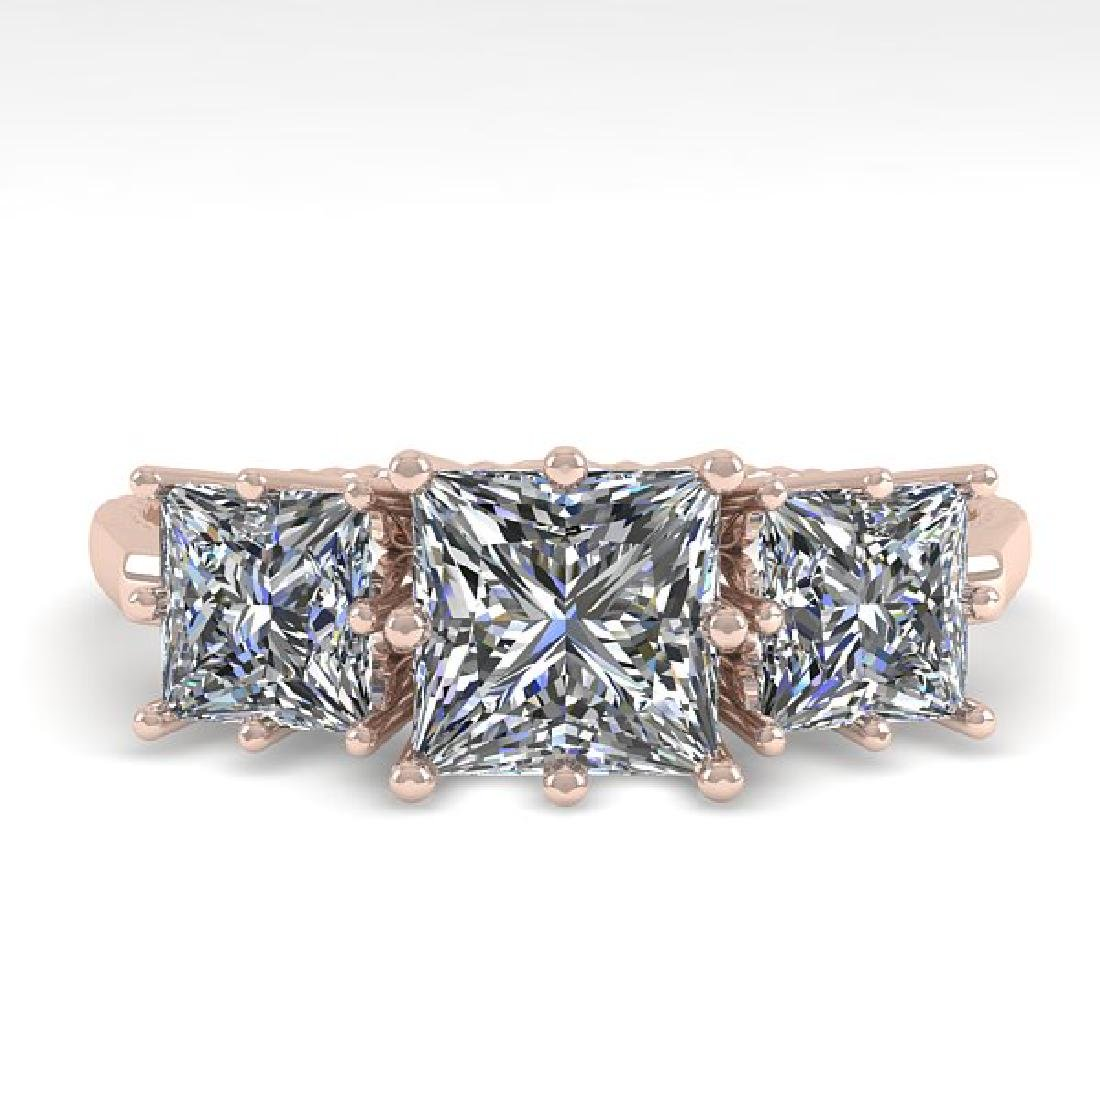 2.0 CTW VS/SI Princess Diamond Art Deco Ring 14K Rose